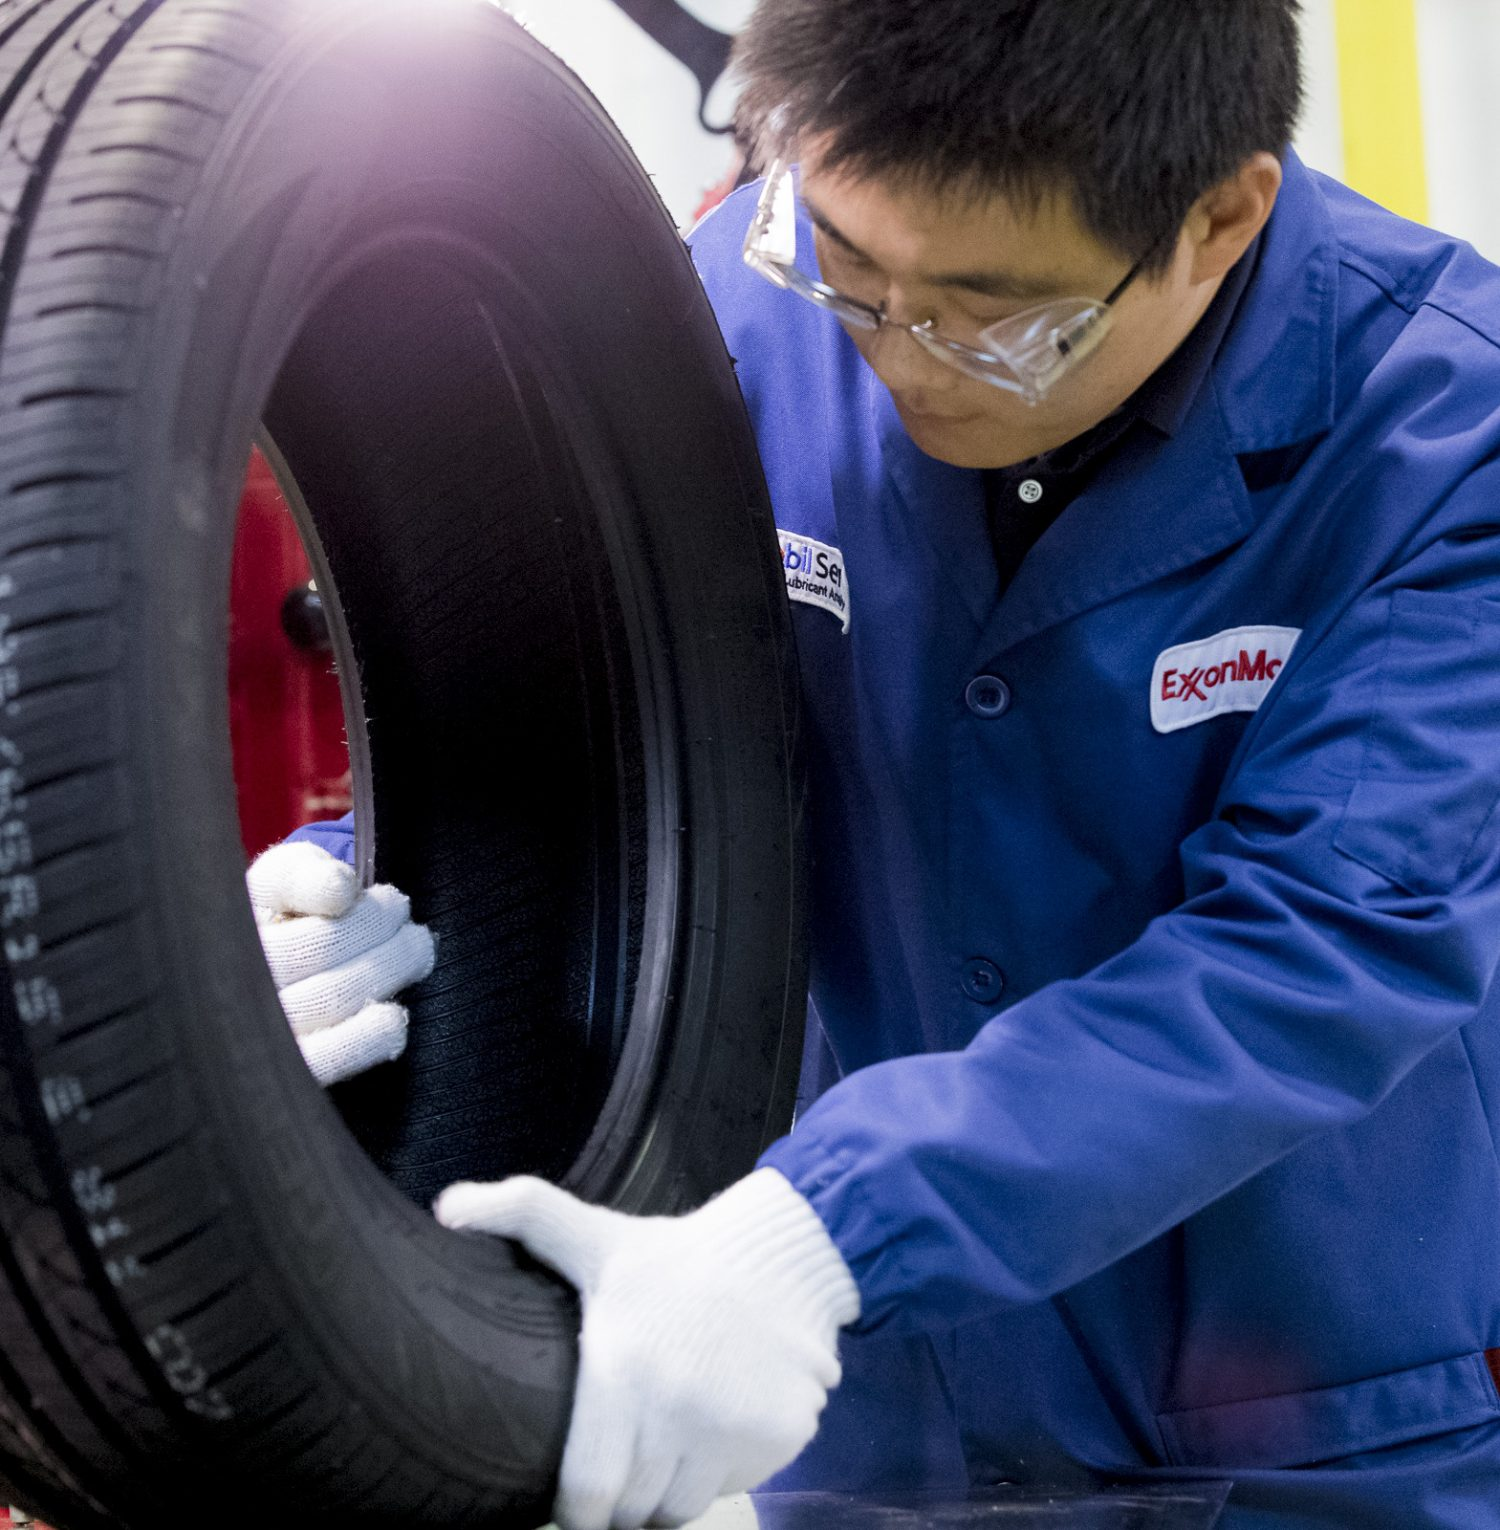 Asia's onramp to growth and what's driving it